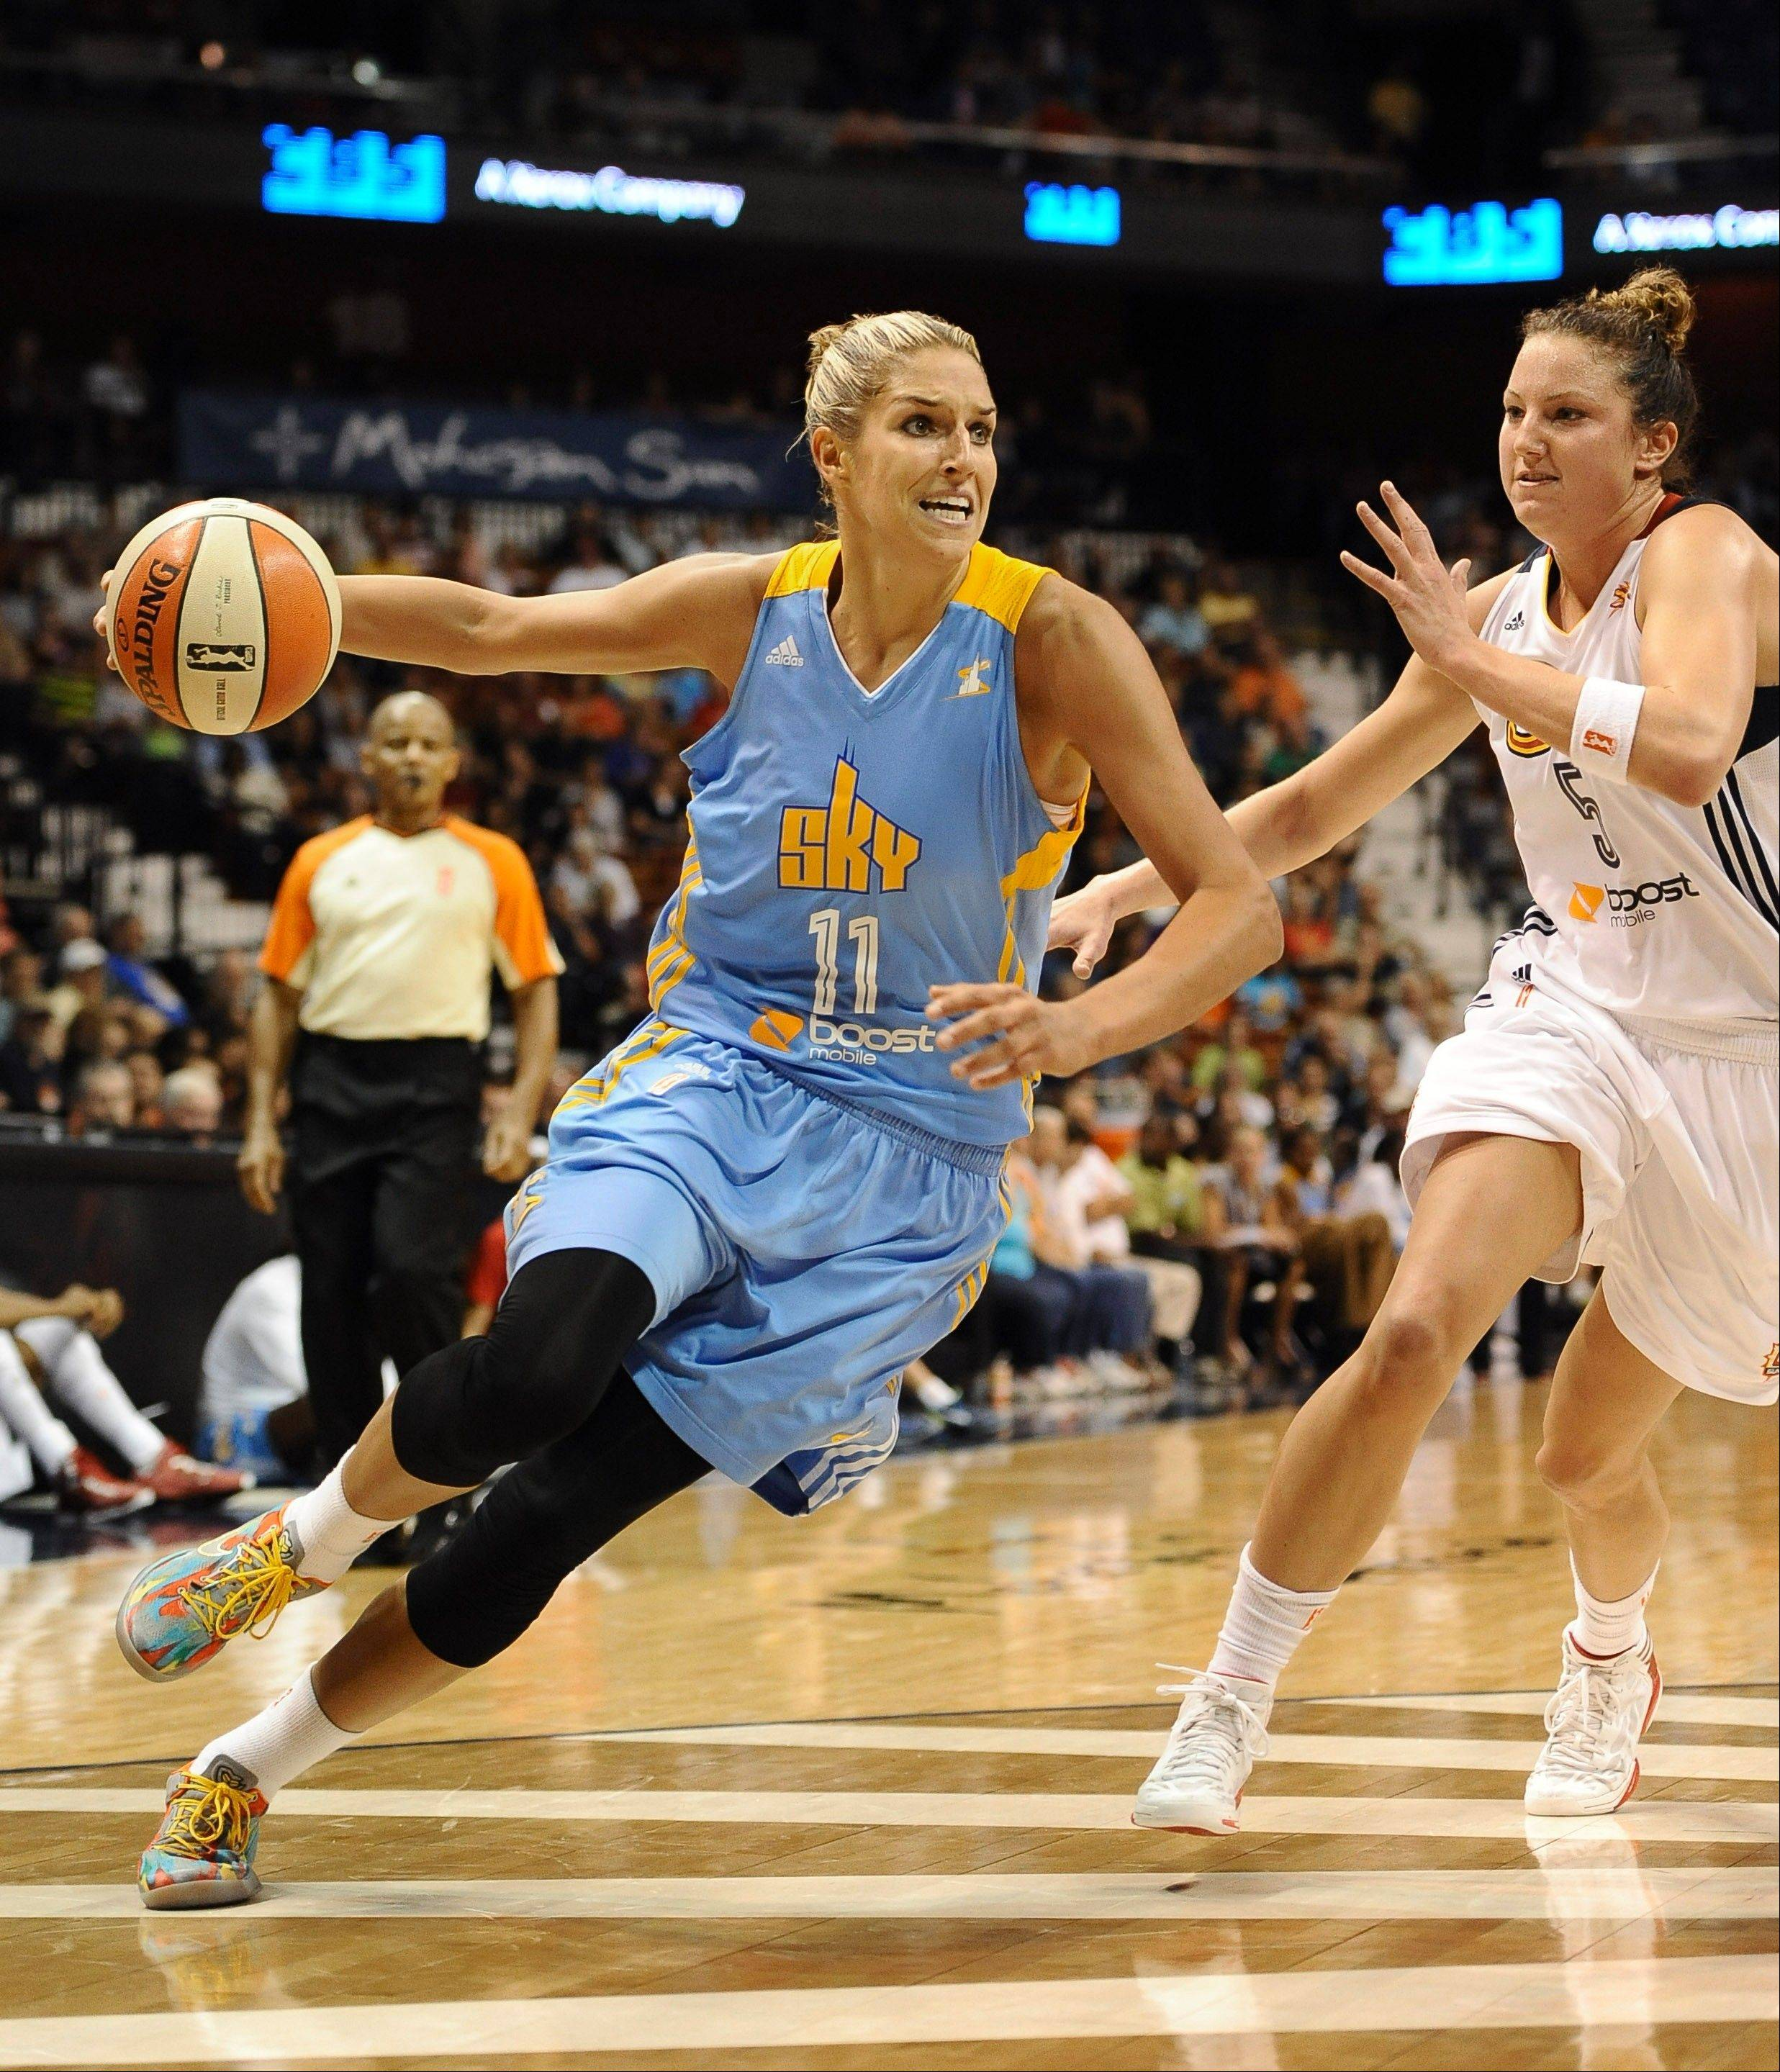 Associated PressChicago Sky leading scorer Elena Delle Donne (11) will play Friday against the New York Liberty as the Sky strives to claim its first WNBA playoff berth in team history.